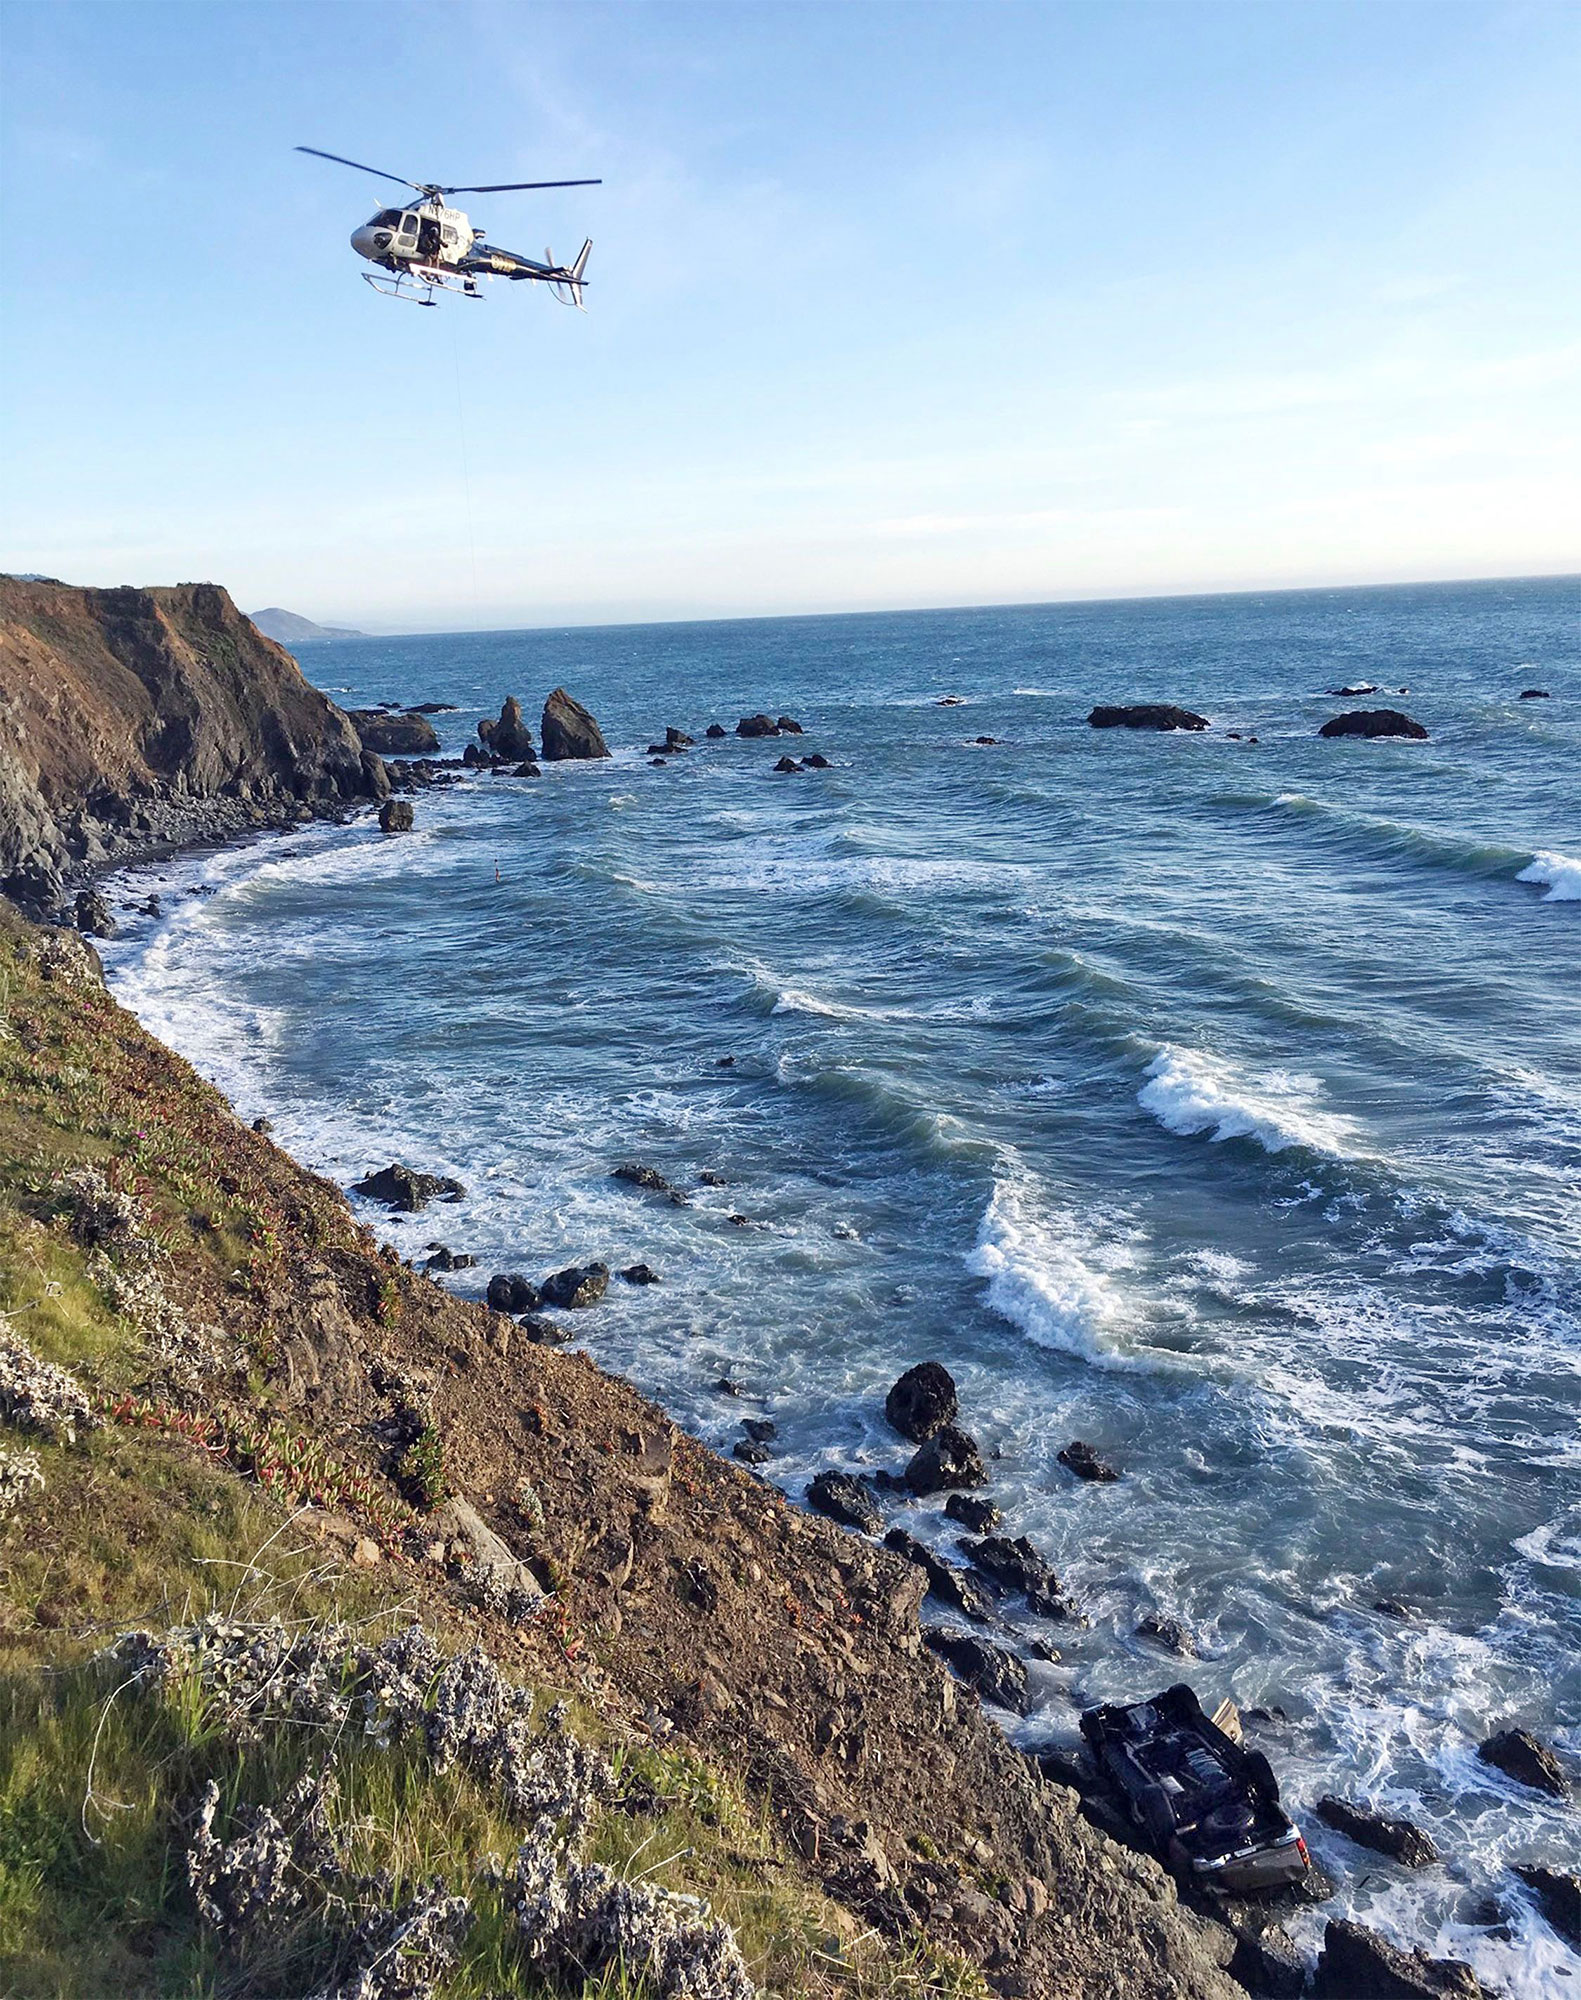 Coastal Crash Five KIlled, Mendocino, USA - 27 Mar 2018